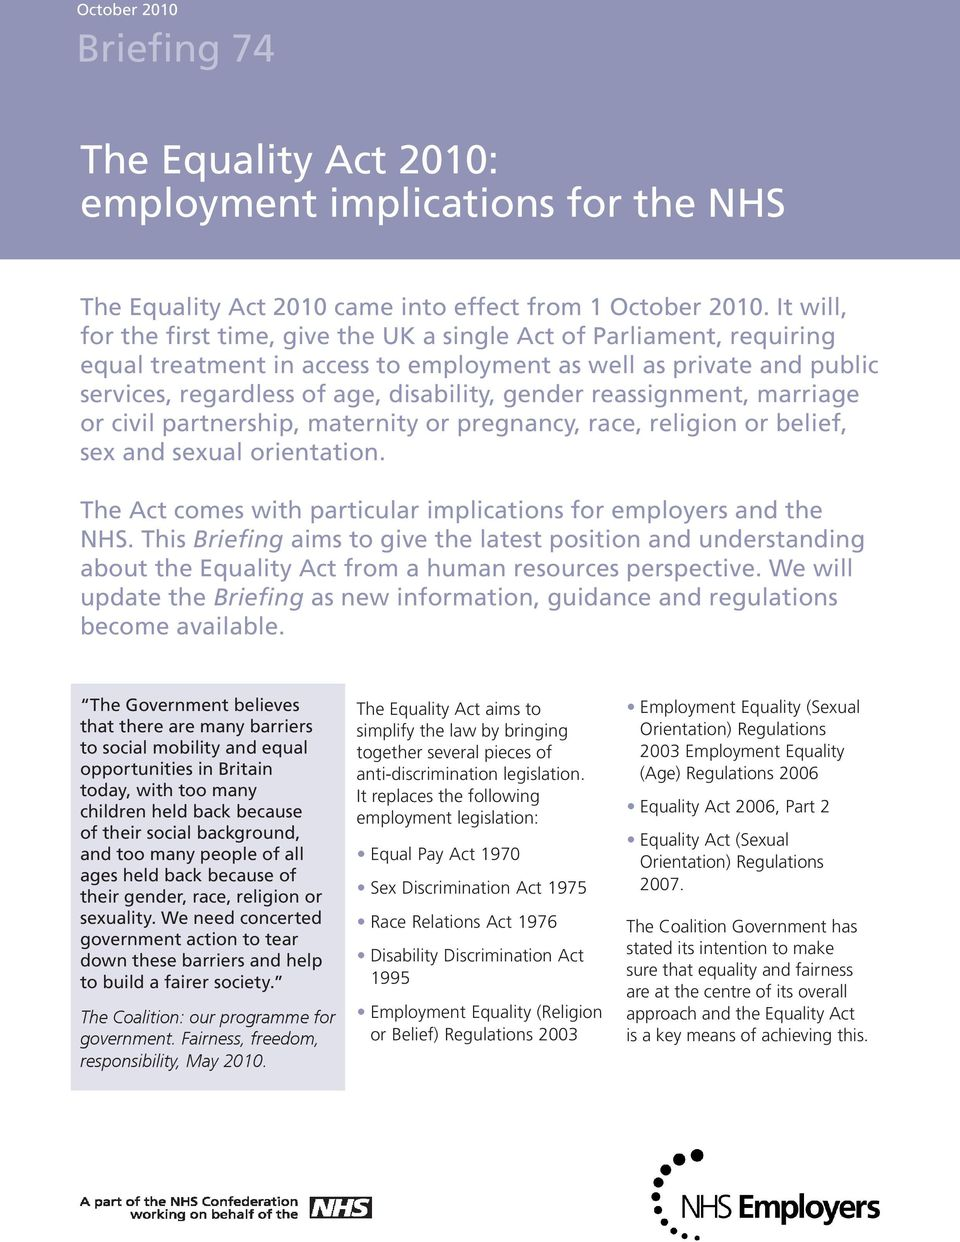 reassignment, marriage or civil partnership, maternity or pregnancy, race, religion or belief, sex and sexual orientation. The Act comes with particular implications for employers and the NHS.